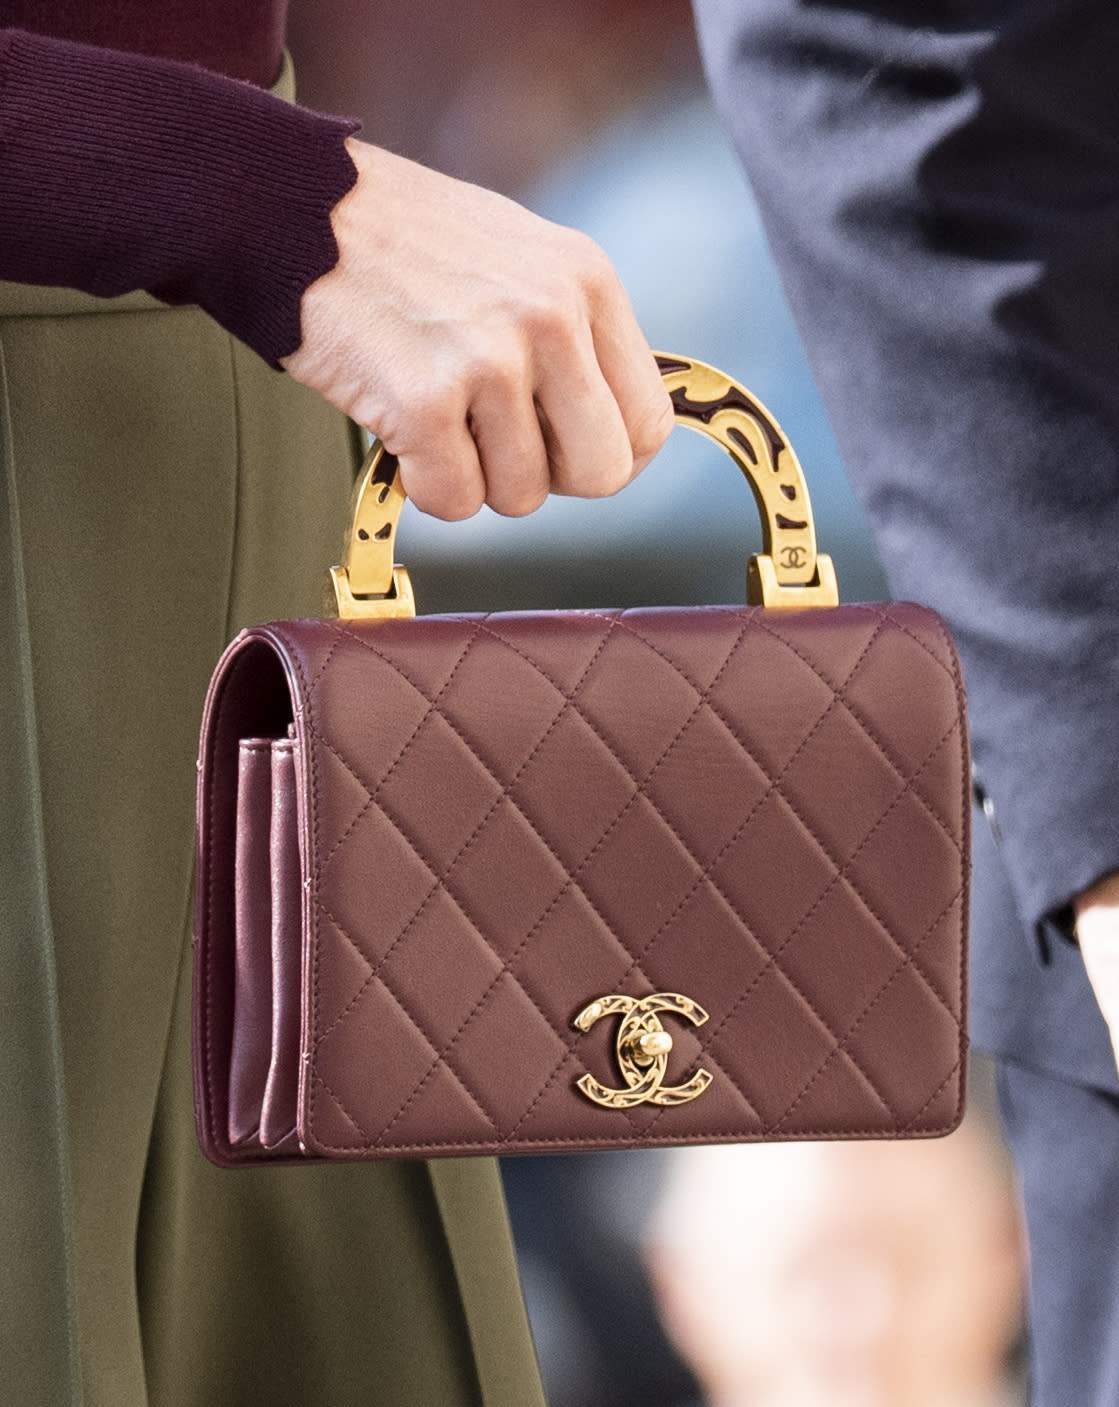 A close-up of the Duchess of Cambridge's Chanel bag [Photo: Getty]